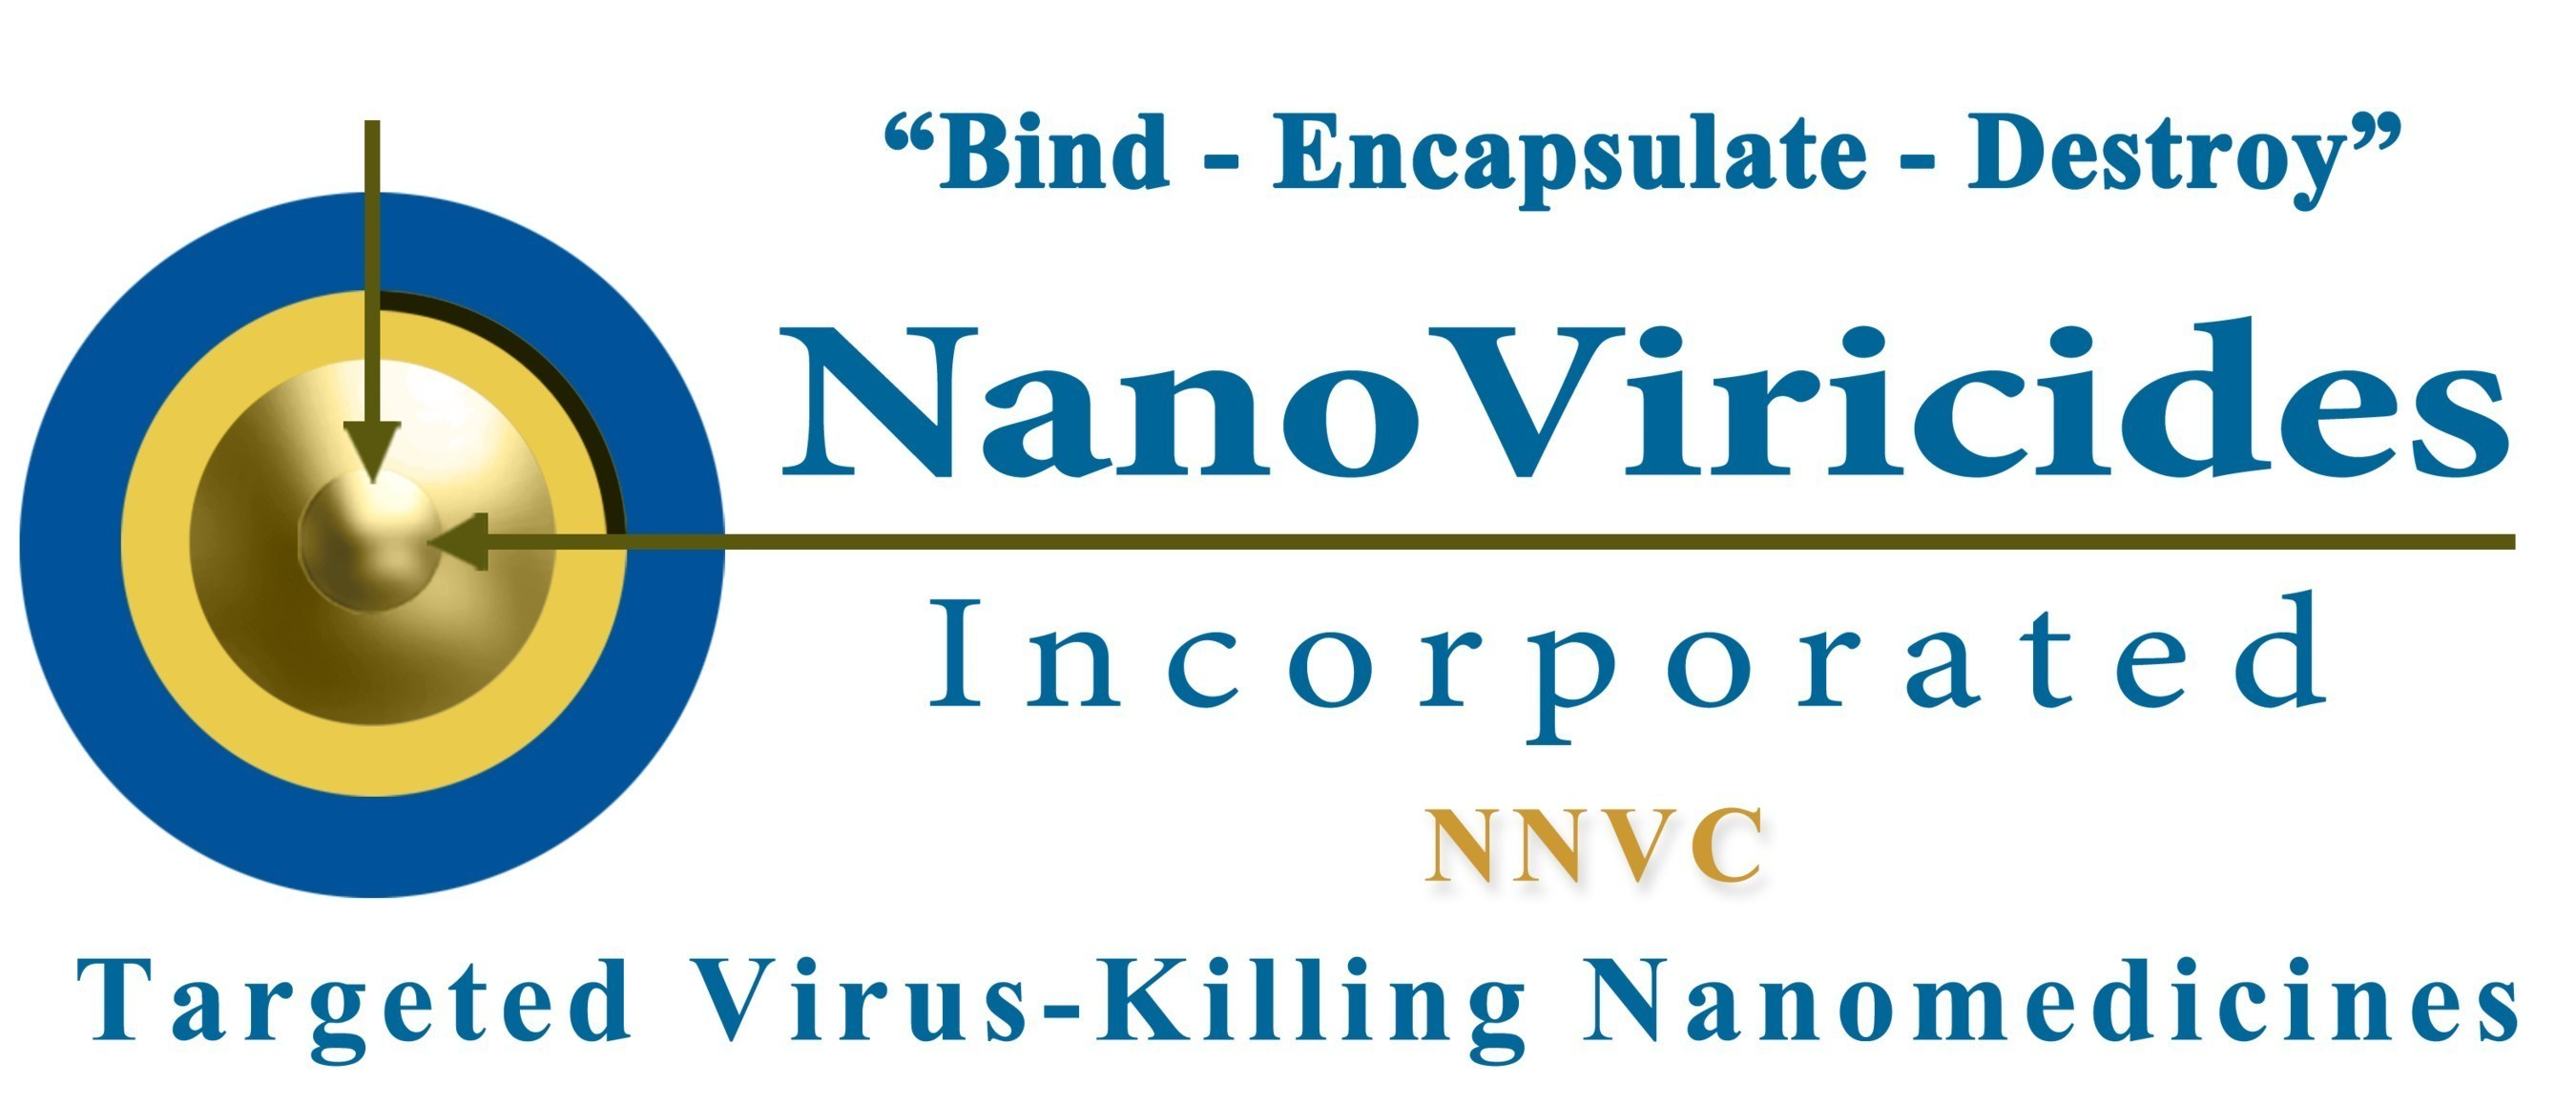 Targeted Virus-Killing Nanomedicines